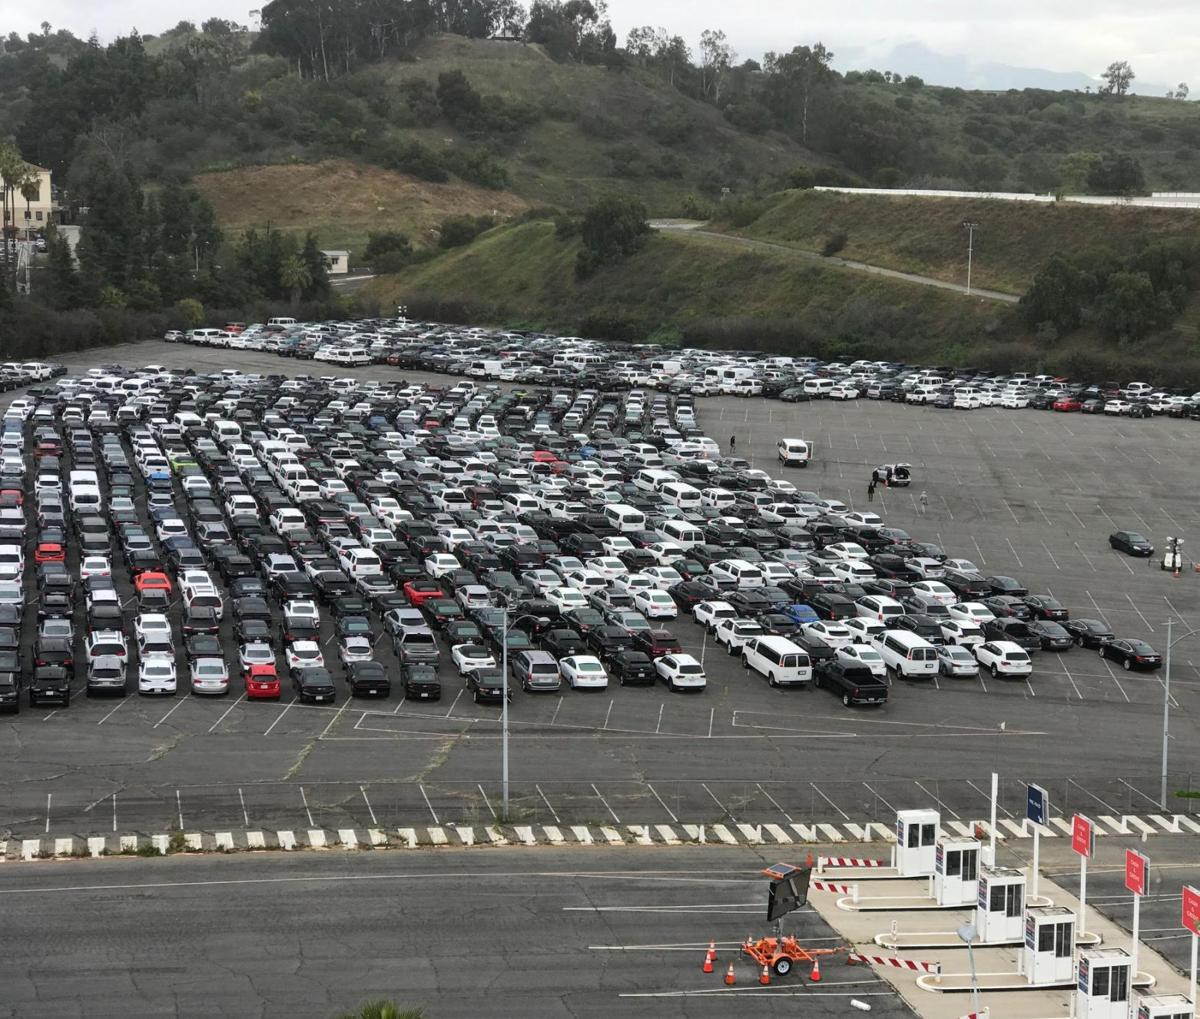 Cars parked at Dodgers Stadium